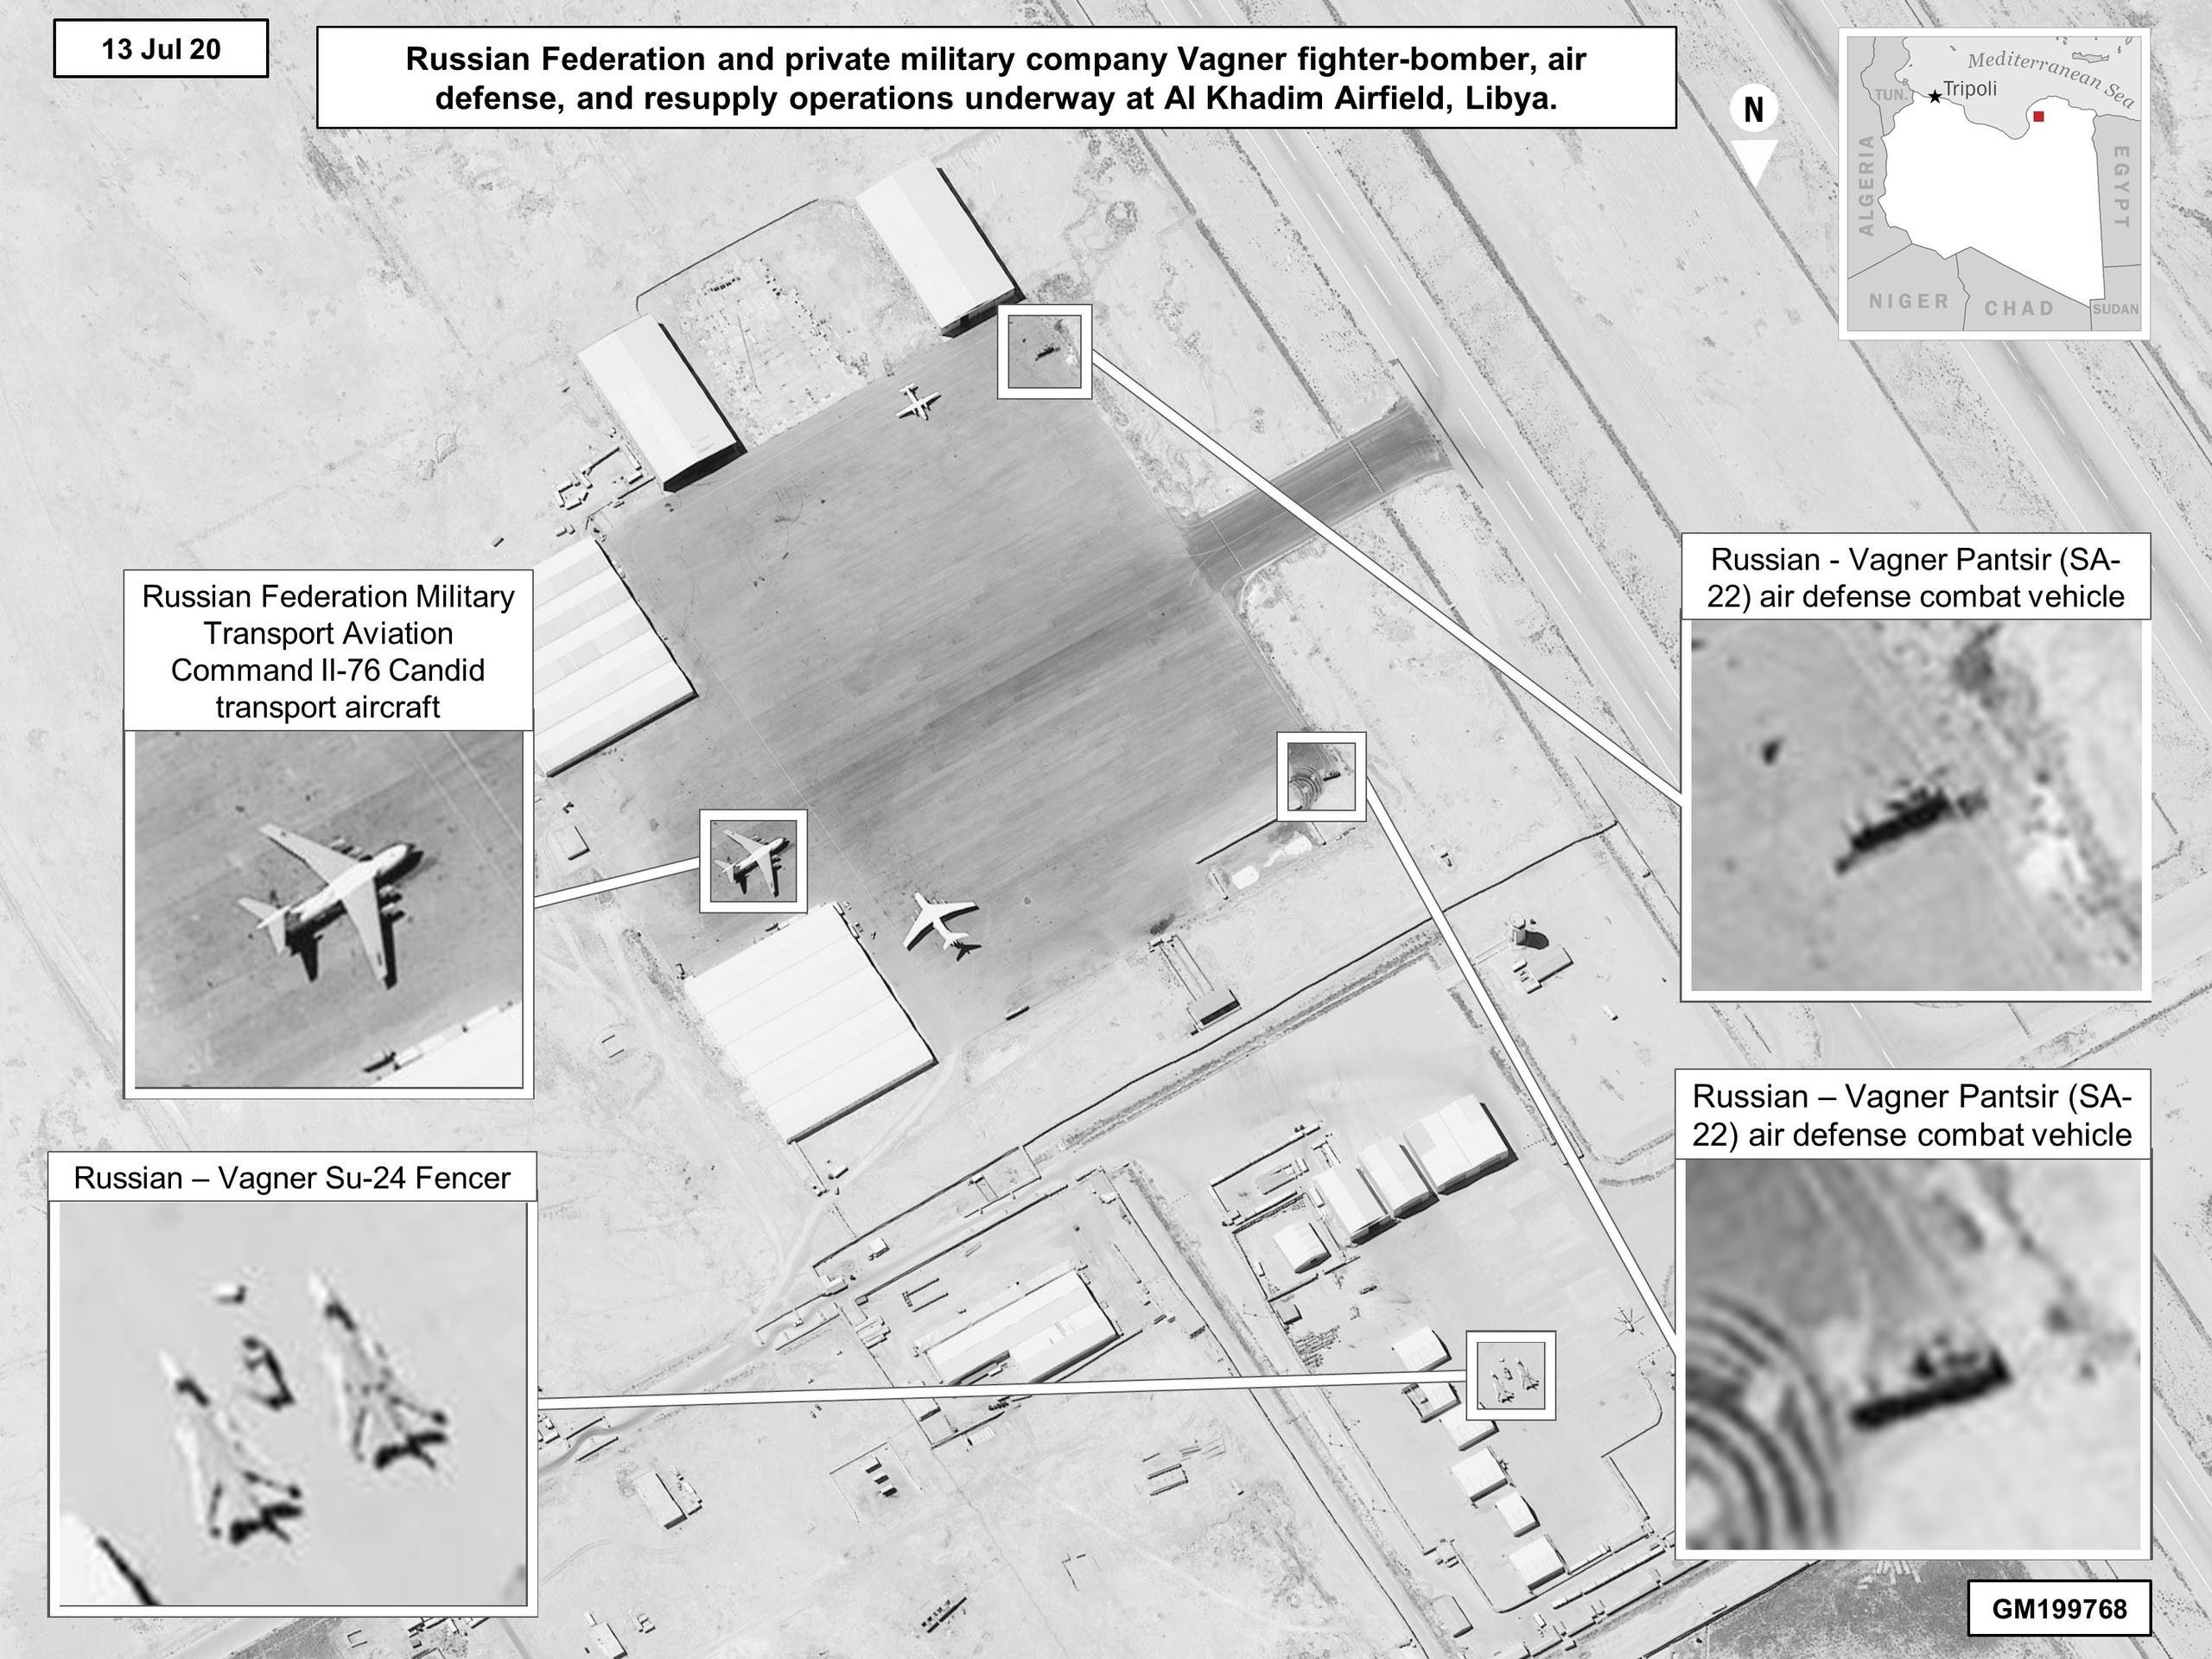 Imagery shows Russian involvement in Libya through the presence of Wagner Group military equipment. (US Africa Command)